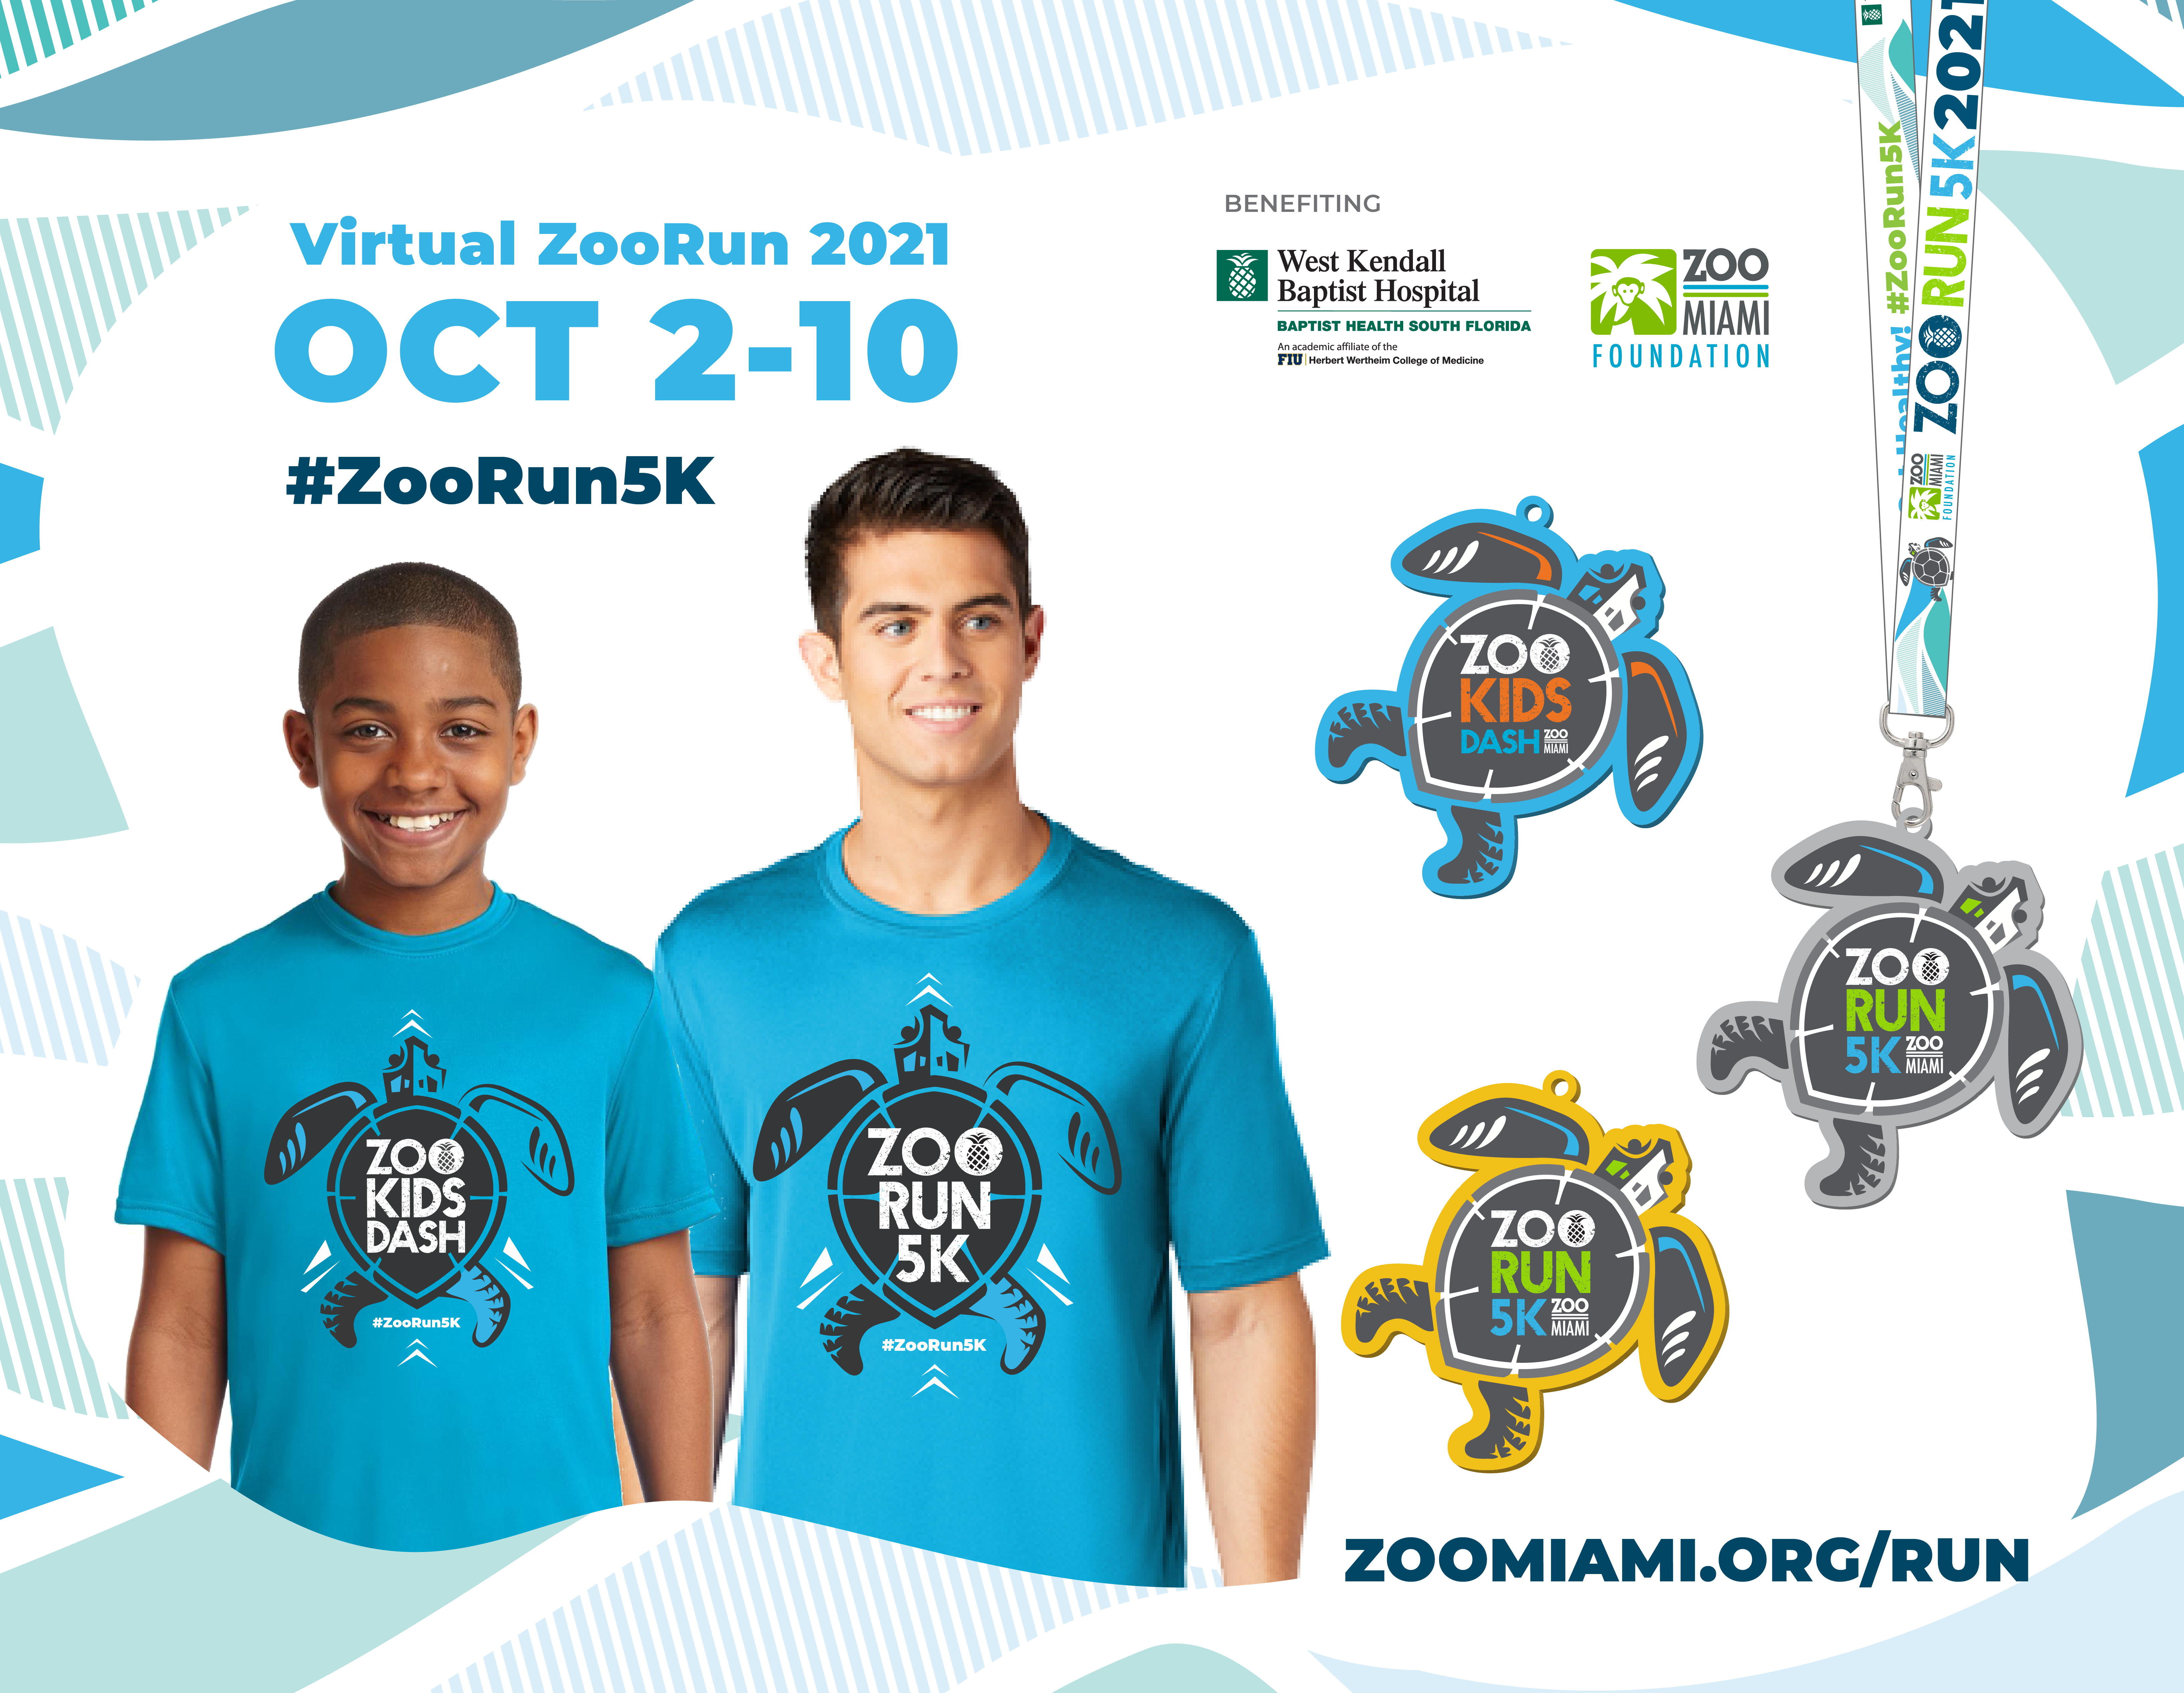 Save the Date for Virtual Zoo Run on October 2 - 10, 2021 with Sea Turtle logo